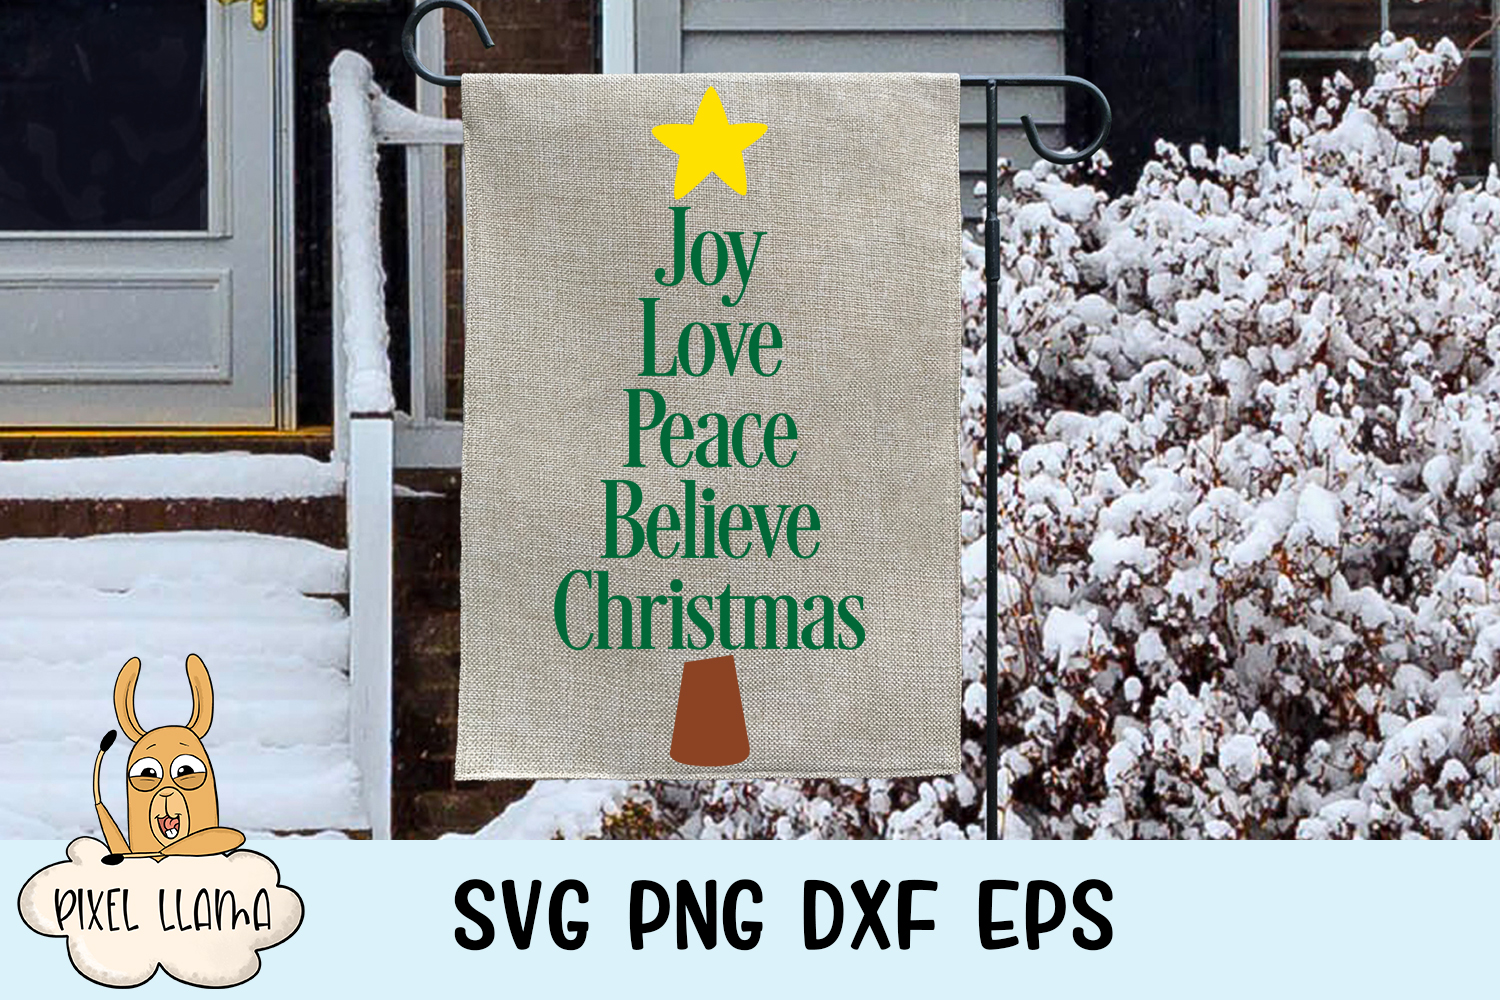 Joy Love Peace Believe Christmas Sign SVG example image 2